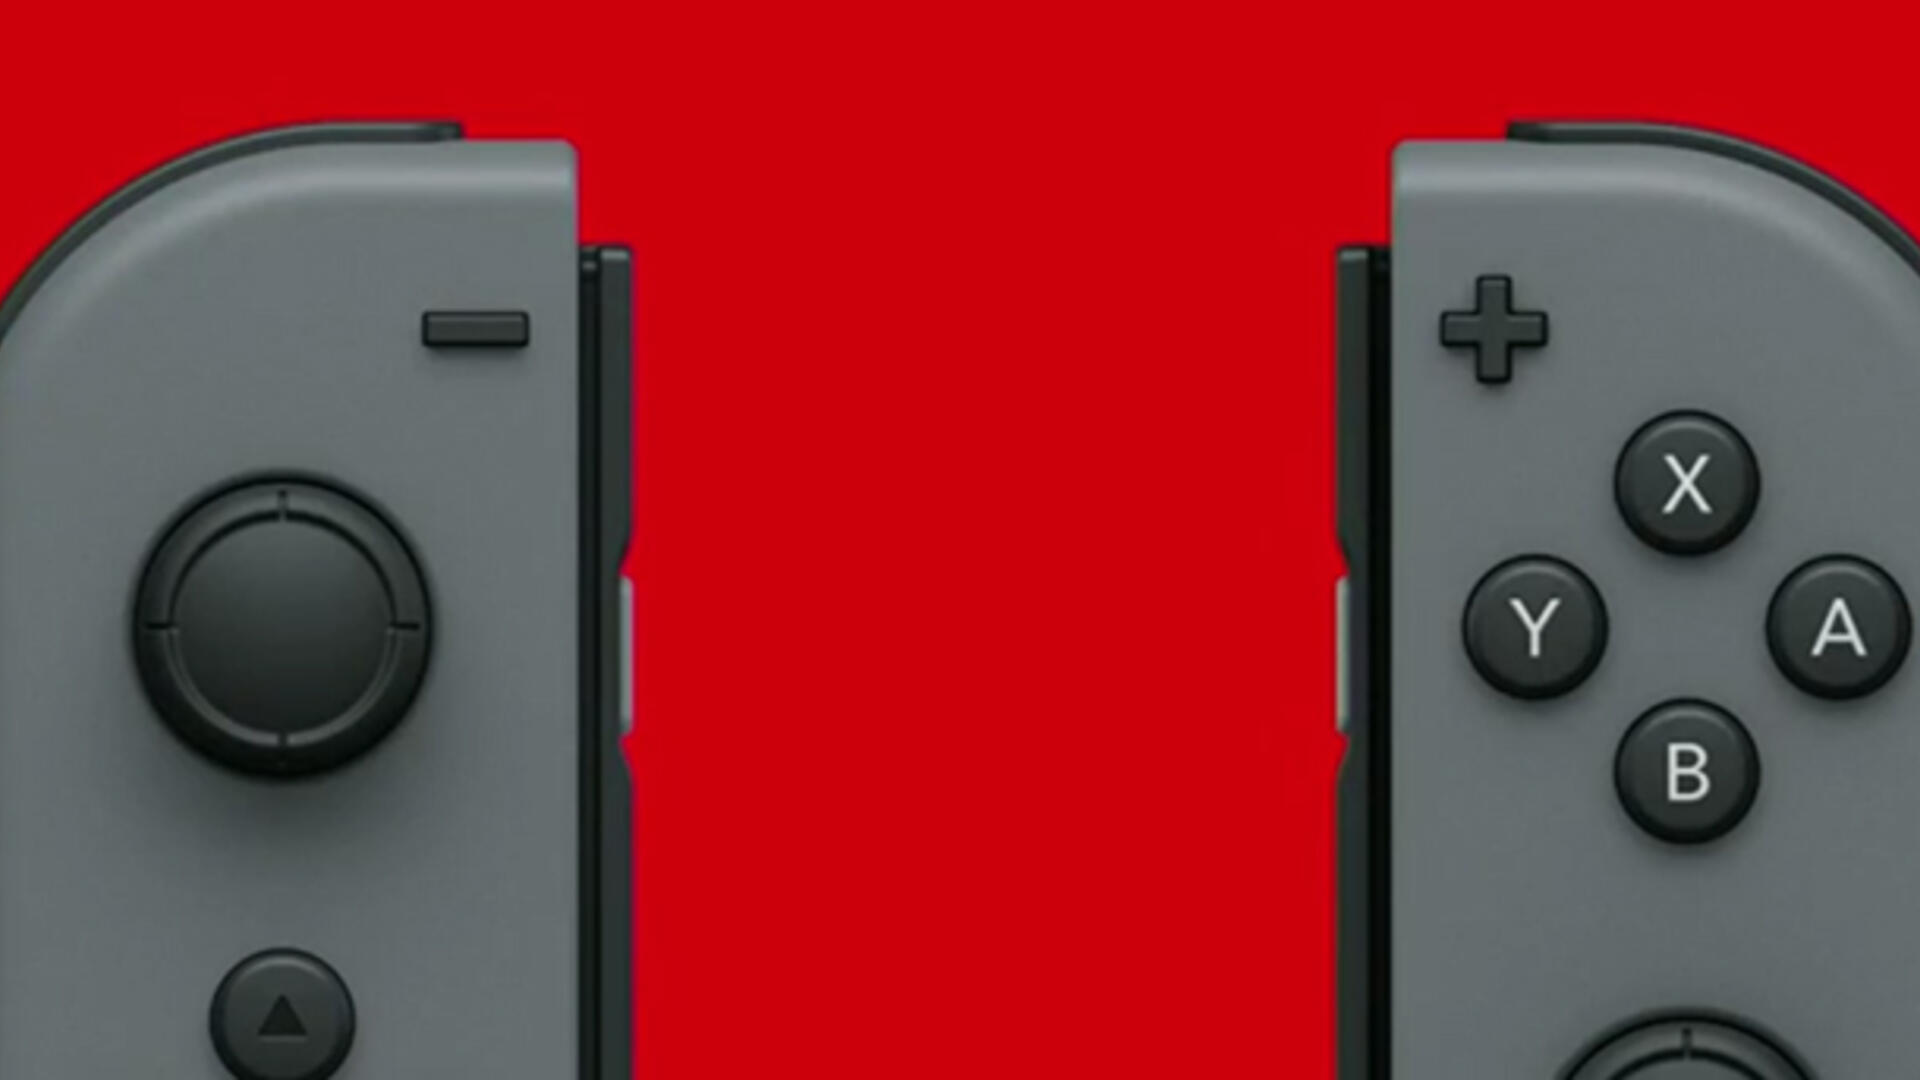 Nintendo Might be Preparing a Hardware Fix for the Left Joy-Con